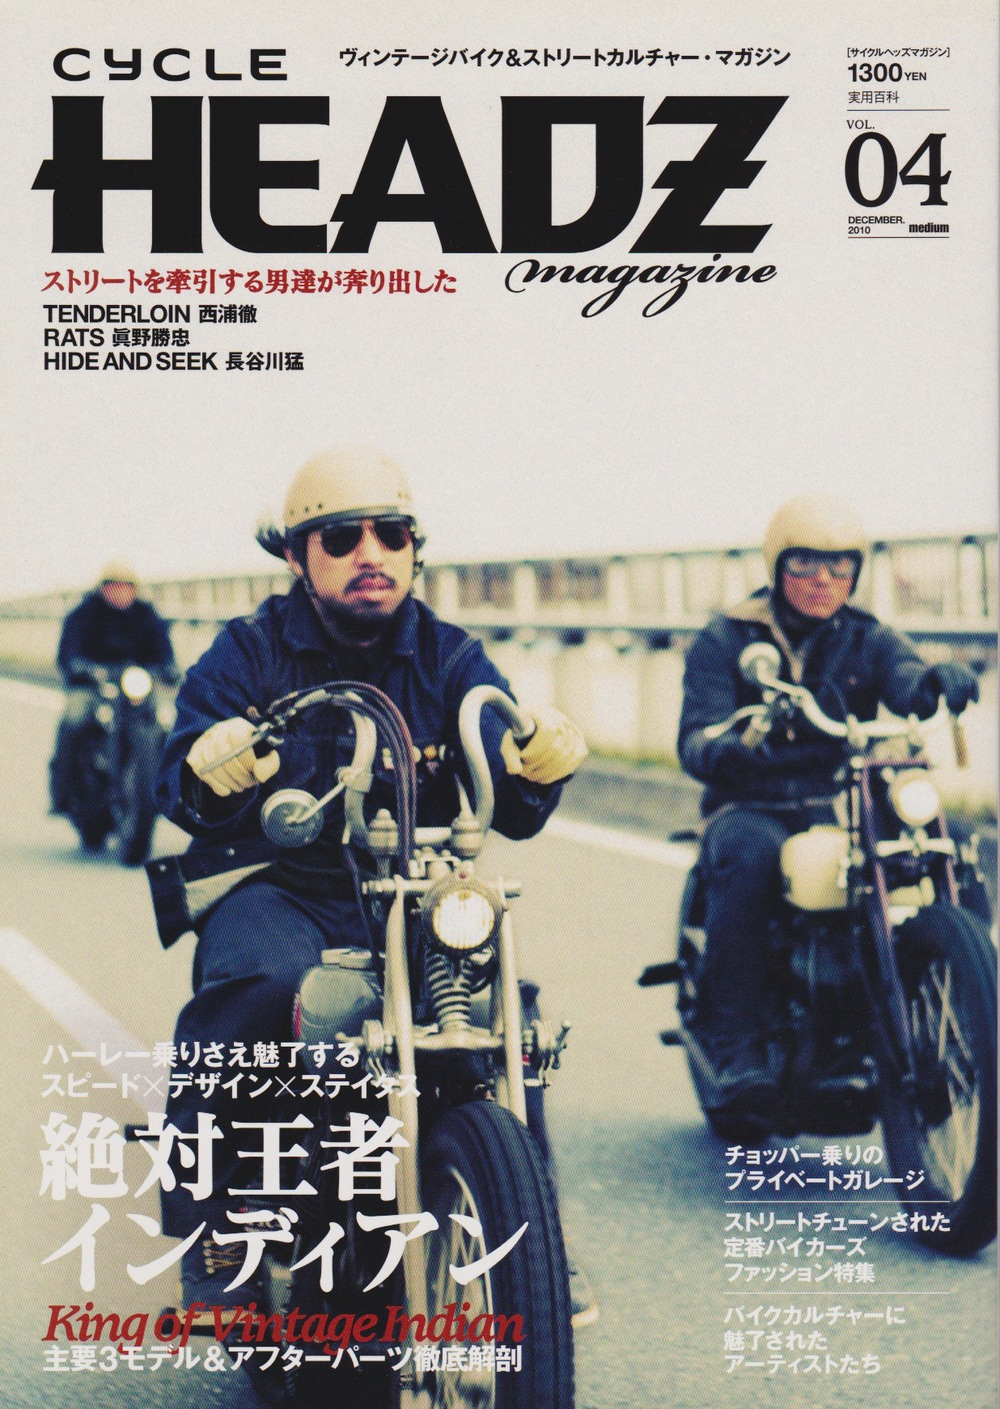 1. Cycle Headz cover.jpeg